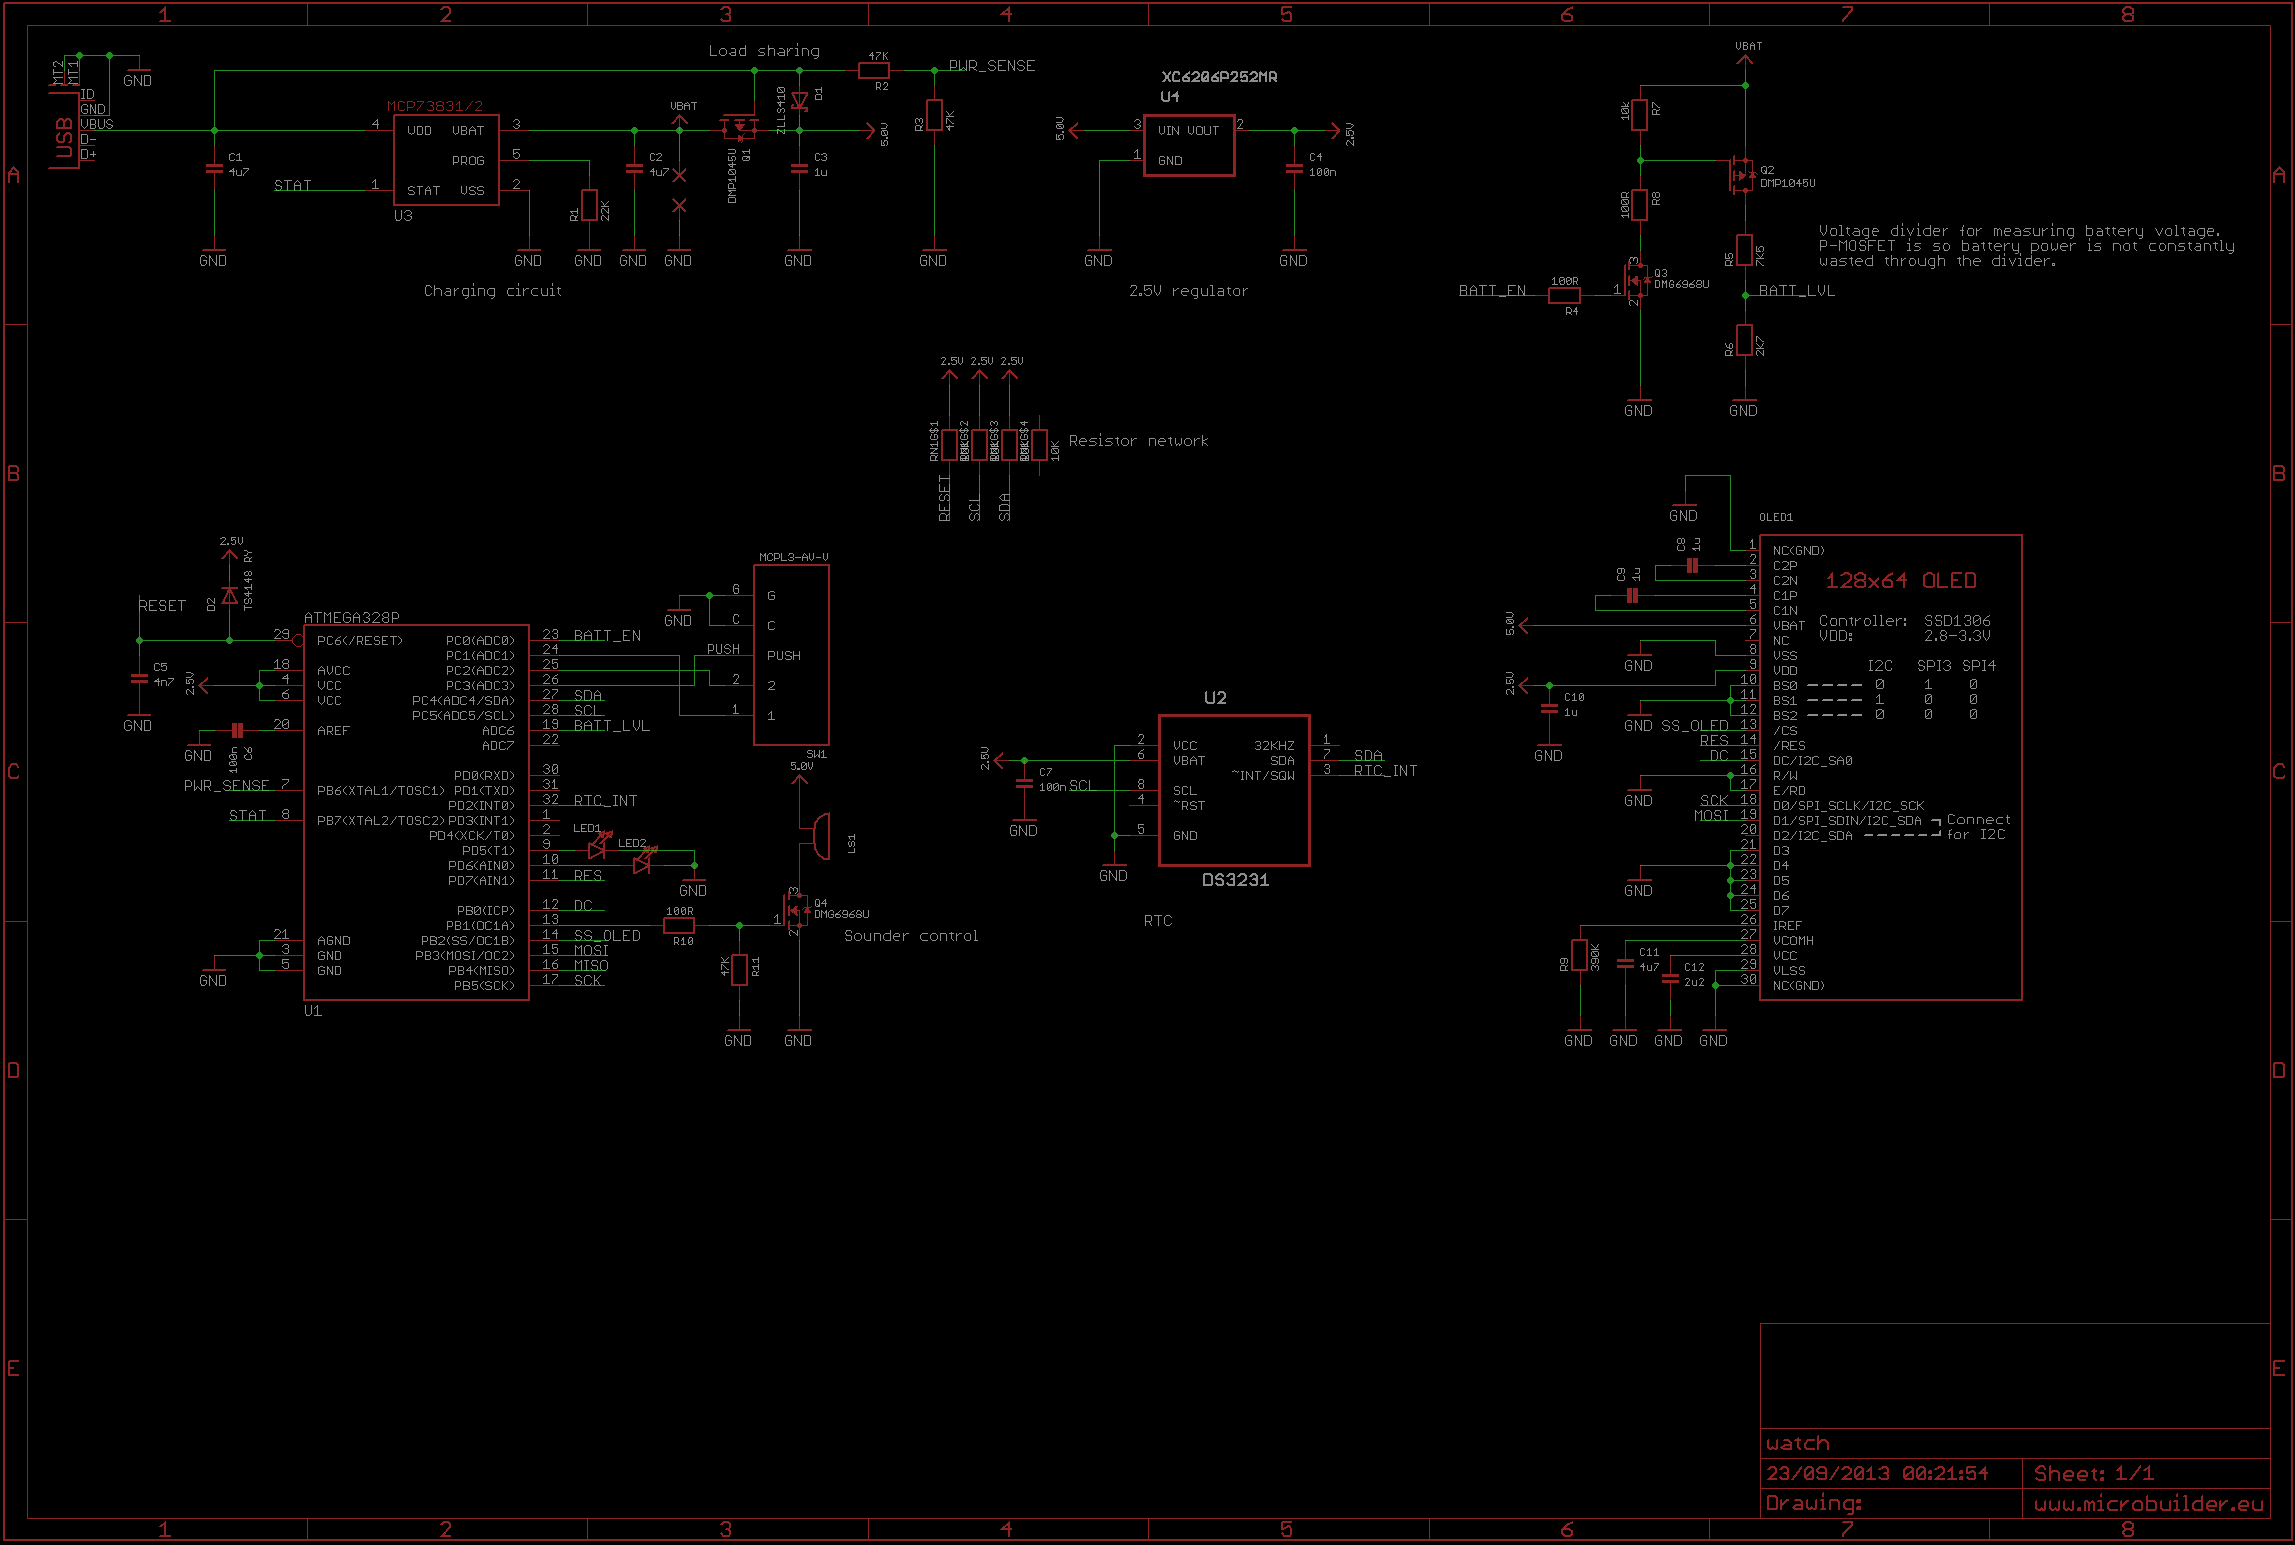 Diy Digital Wristwatch Zaks Electronics Blog Intro 41 Led Flasher Circuit Using 555 Ic I Made This As A Quick Schematic